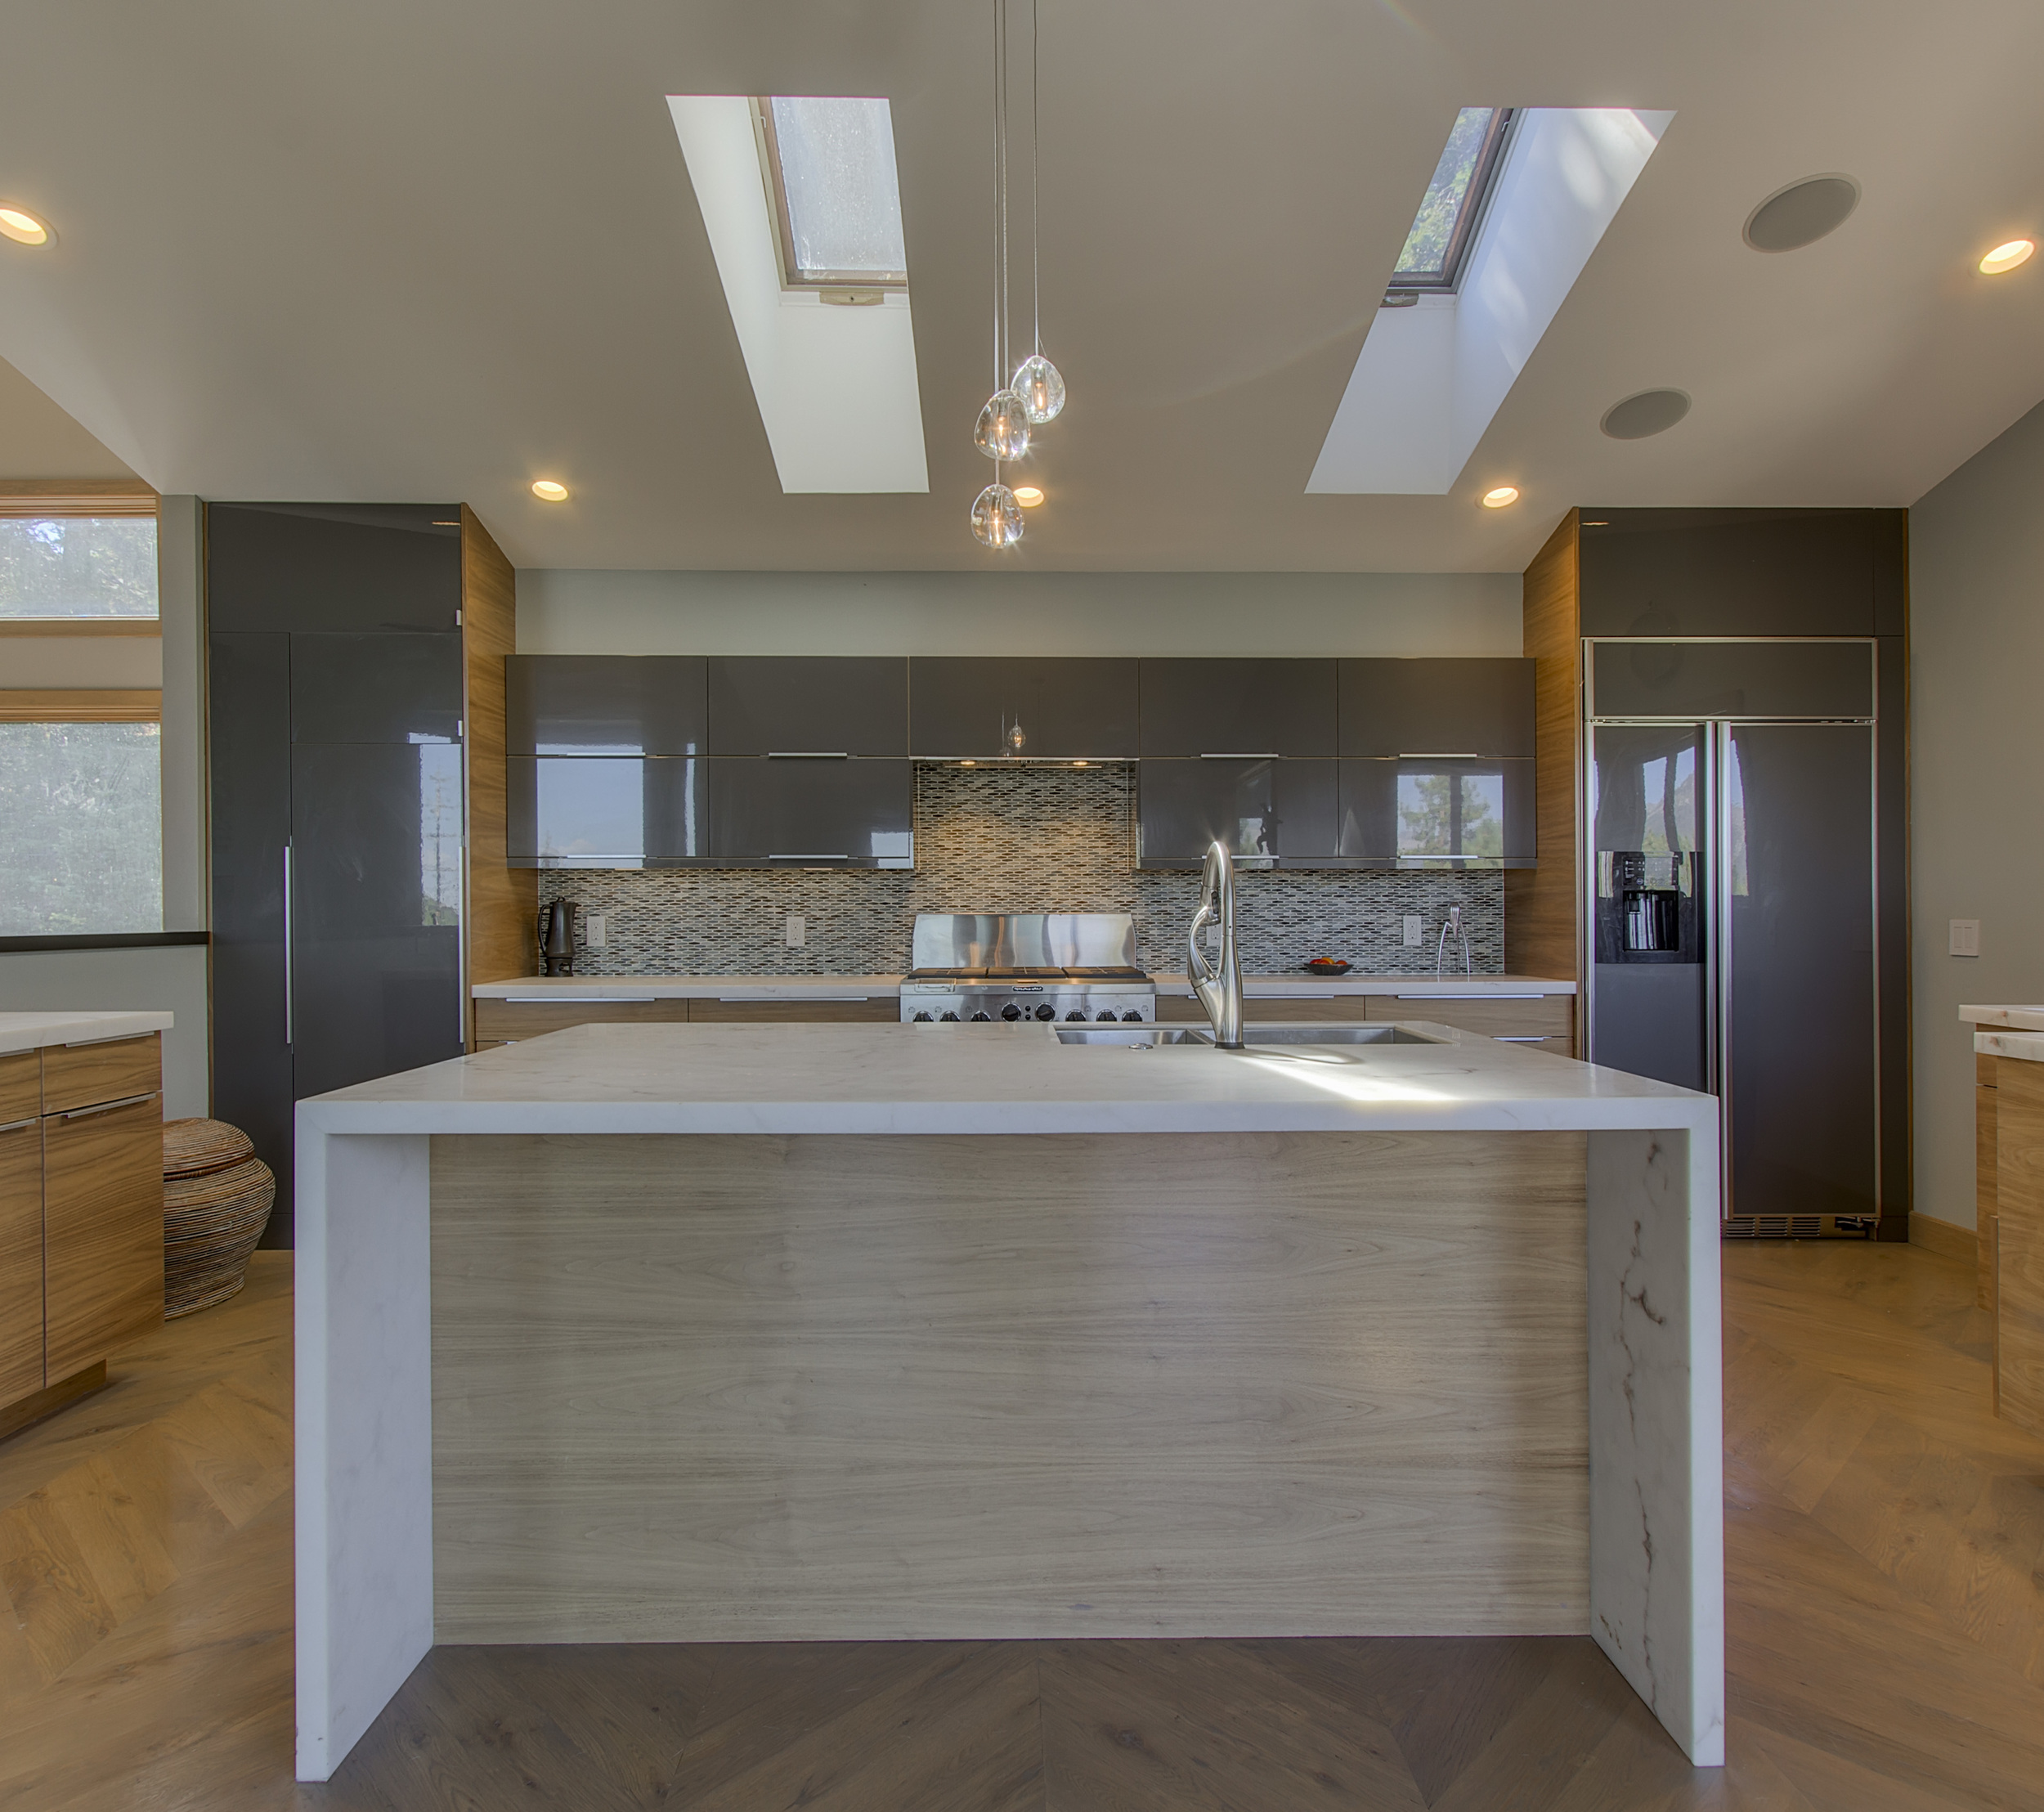 tahoe mtn, kitchen remodeled.jpg